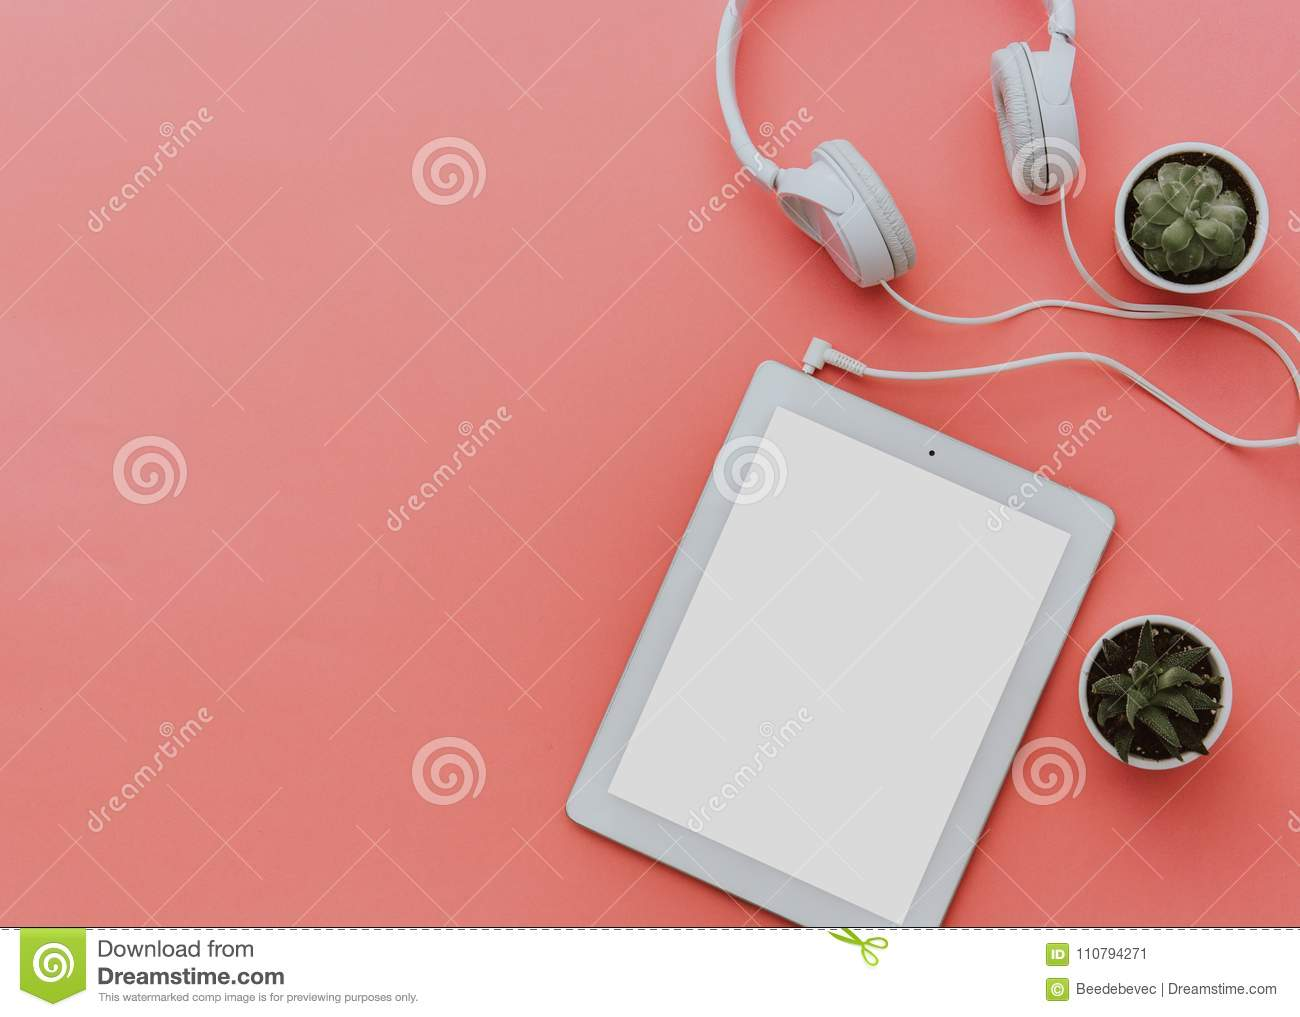 Blogger workspace with tablet and headphones on pastel background. Mock up, Flat lay, top view, minimalistic styled home office